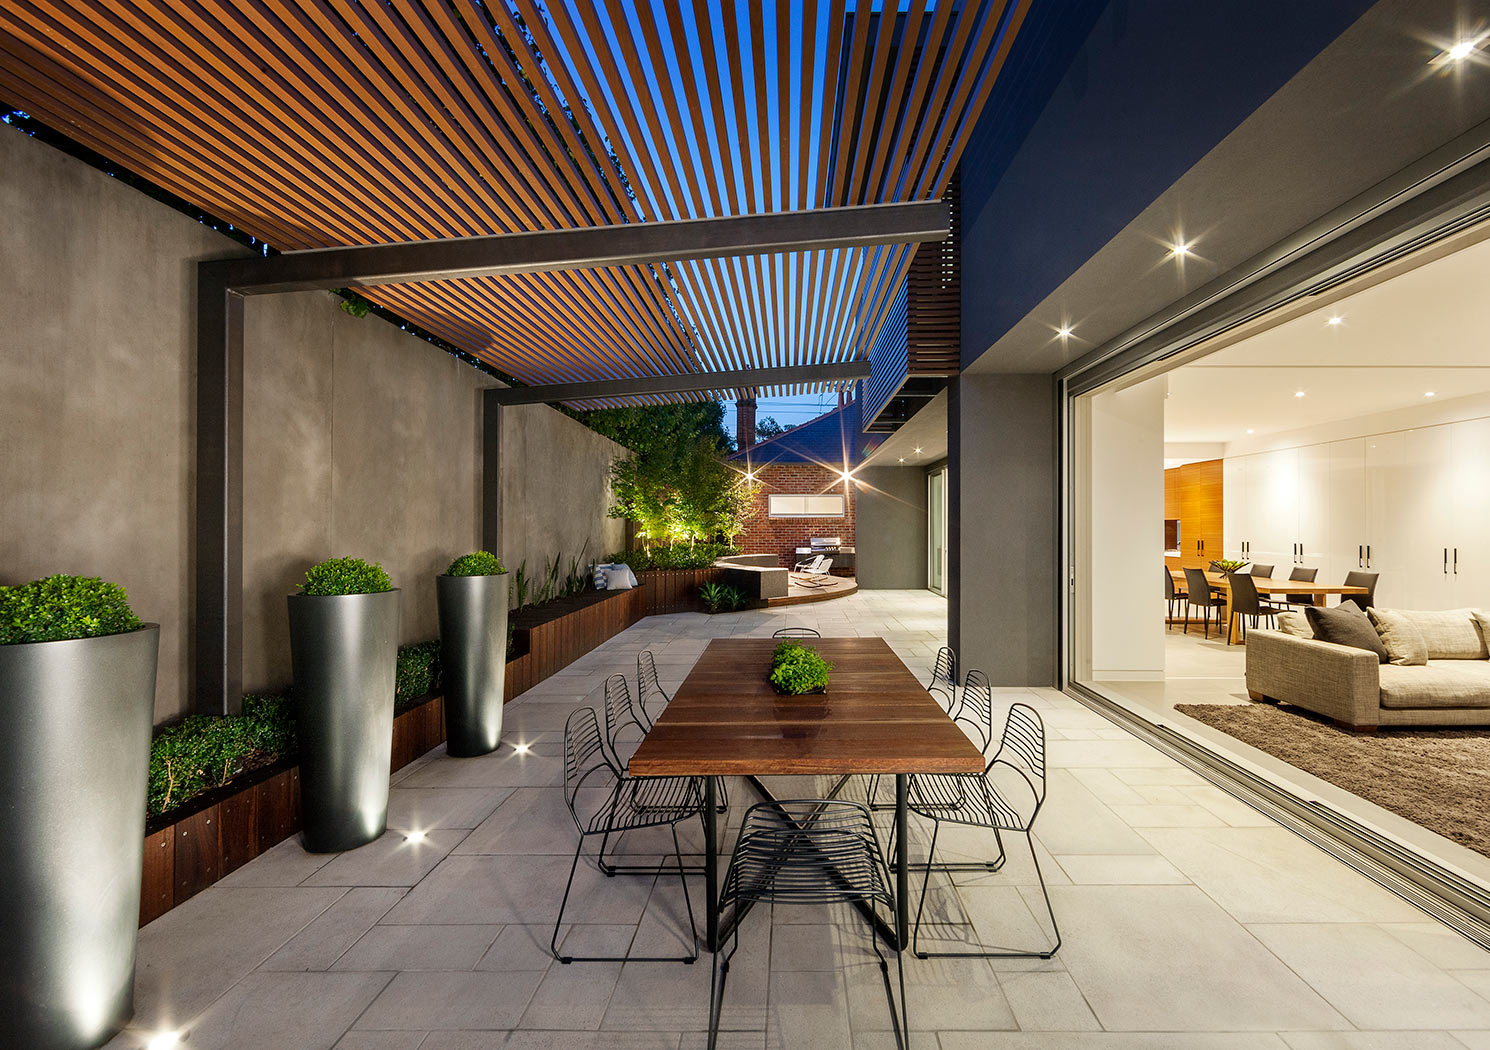 Creating a Seamless Indoor-Outdoor Transition Between ... on Seamless Indoor Outdoor Living id=48128